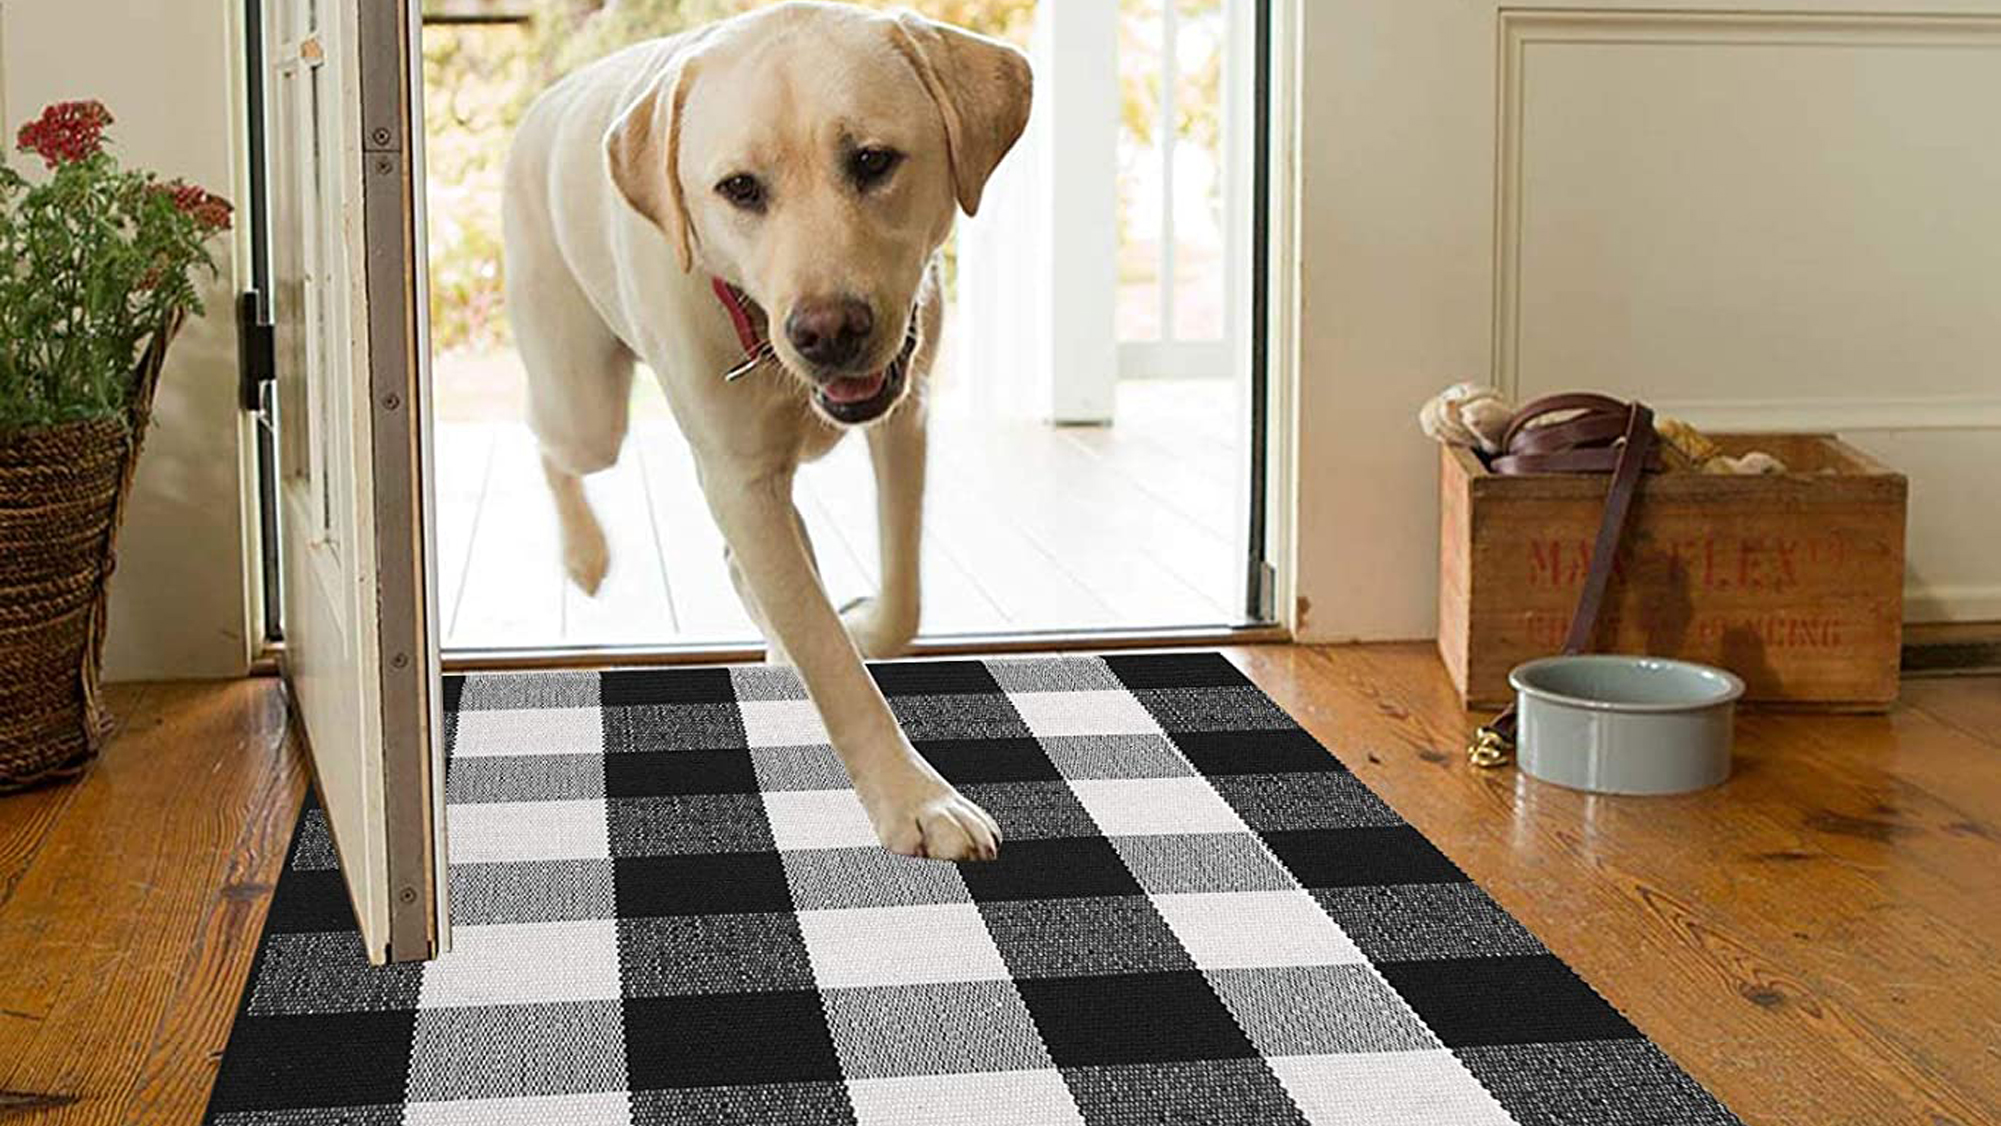 MUBIN Buffalo Plaid Rug 2X3 ft Outdoor Black and White Checked Rug Cotton Reversible